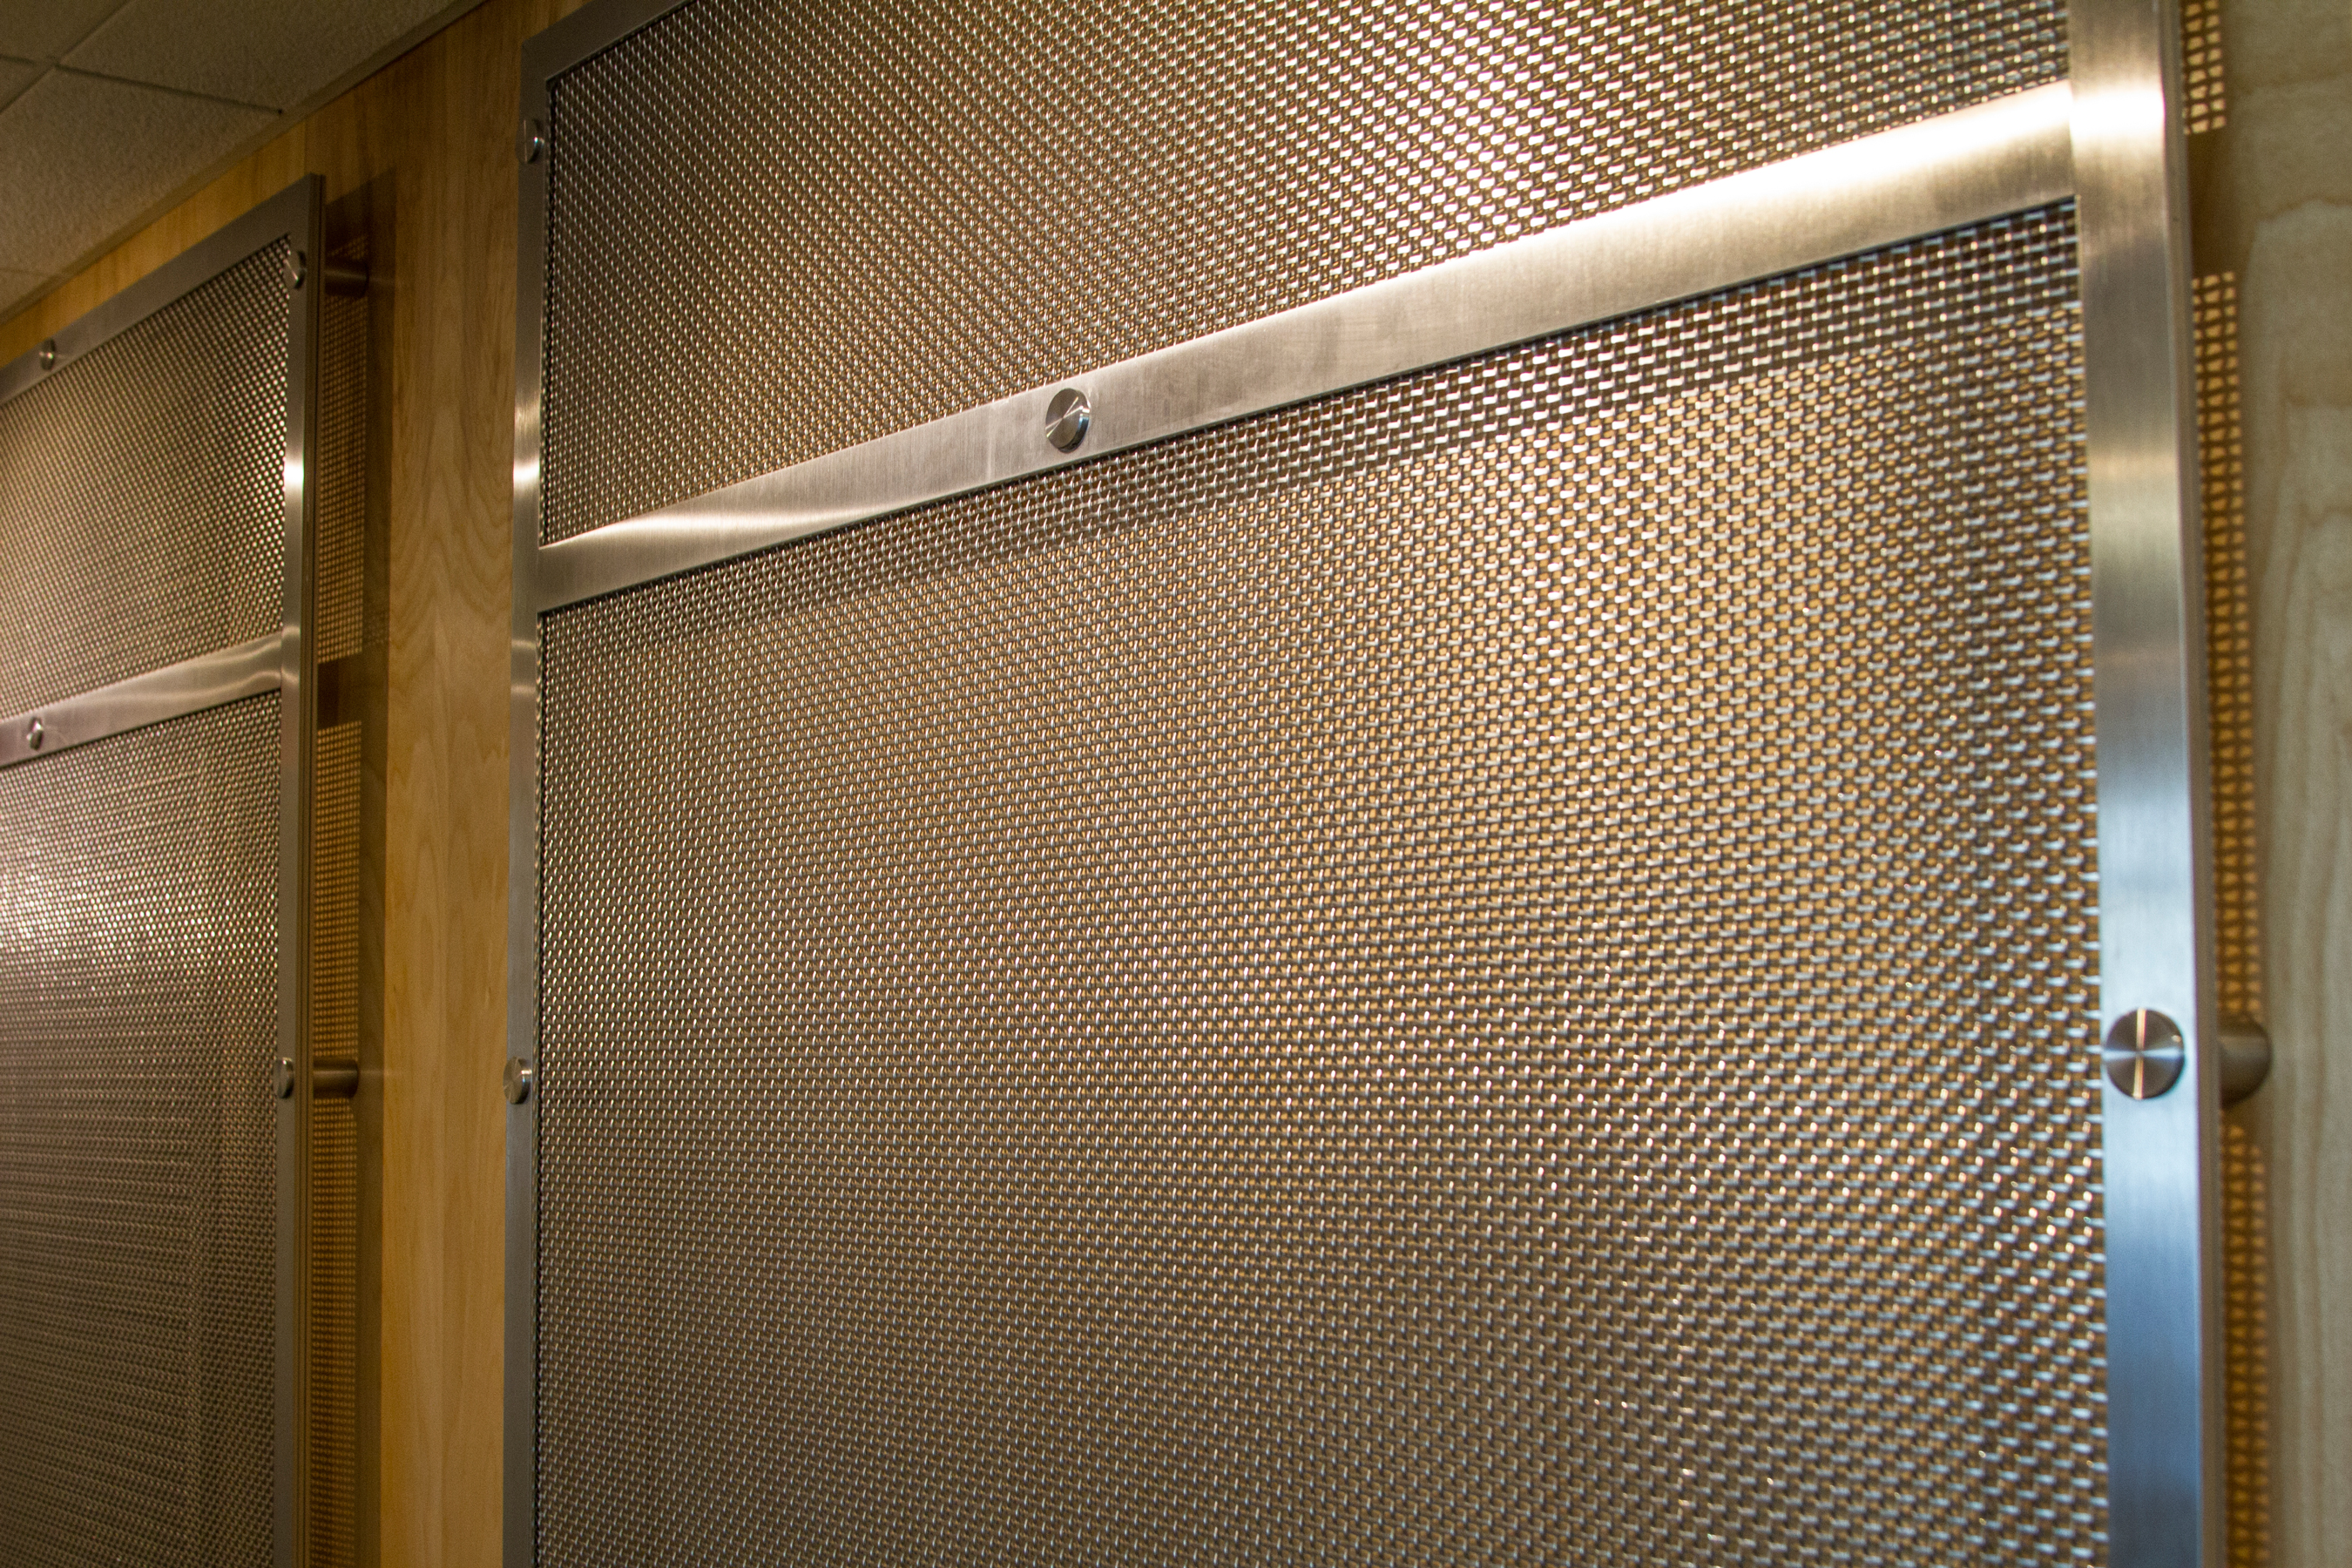 Banker Wire mesh allows the warmth of the wood paneling to show through.